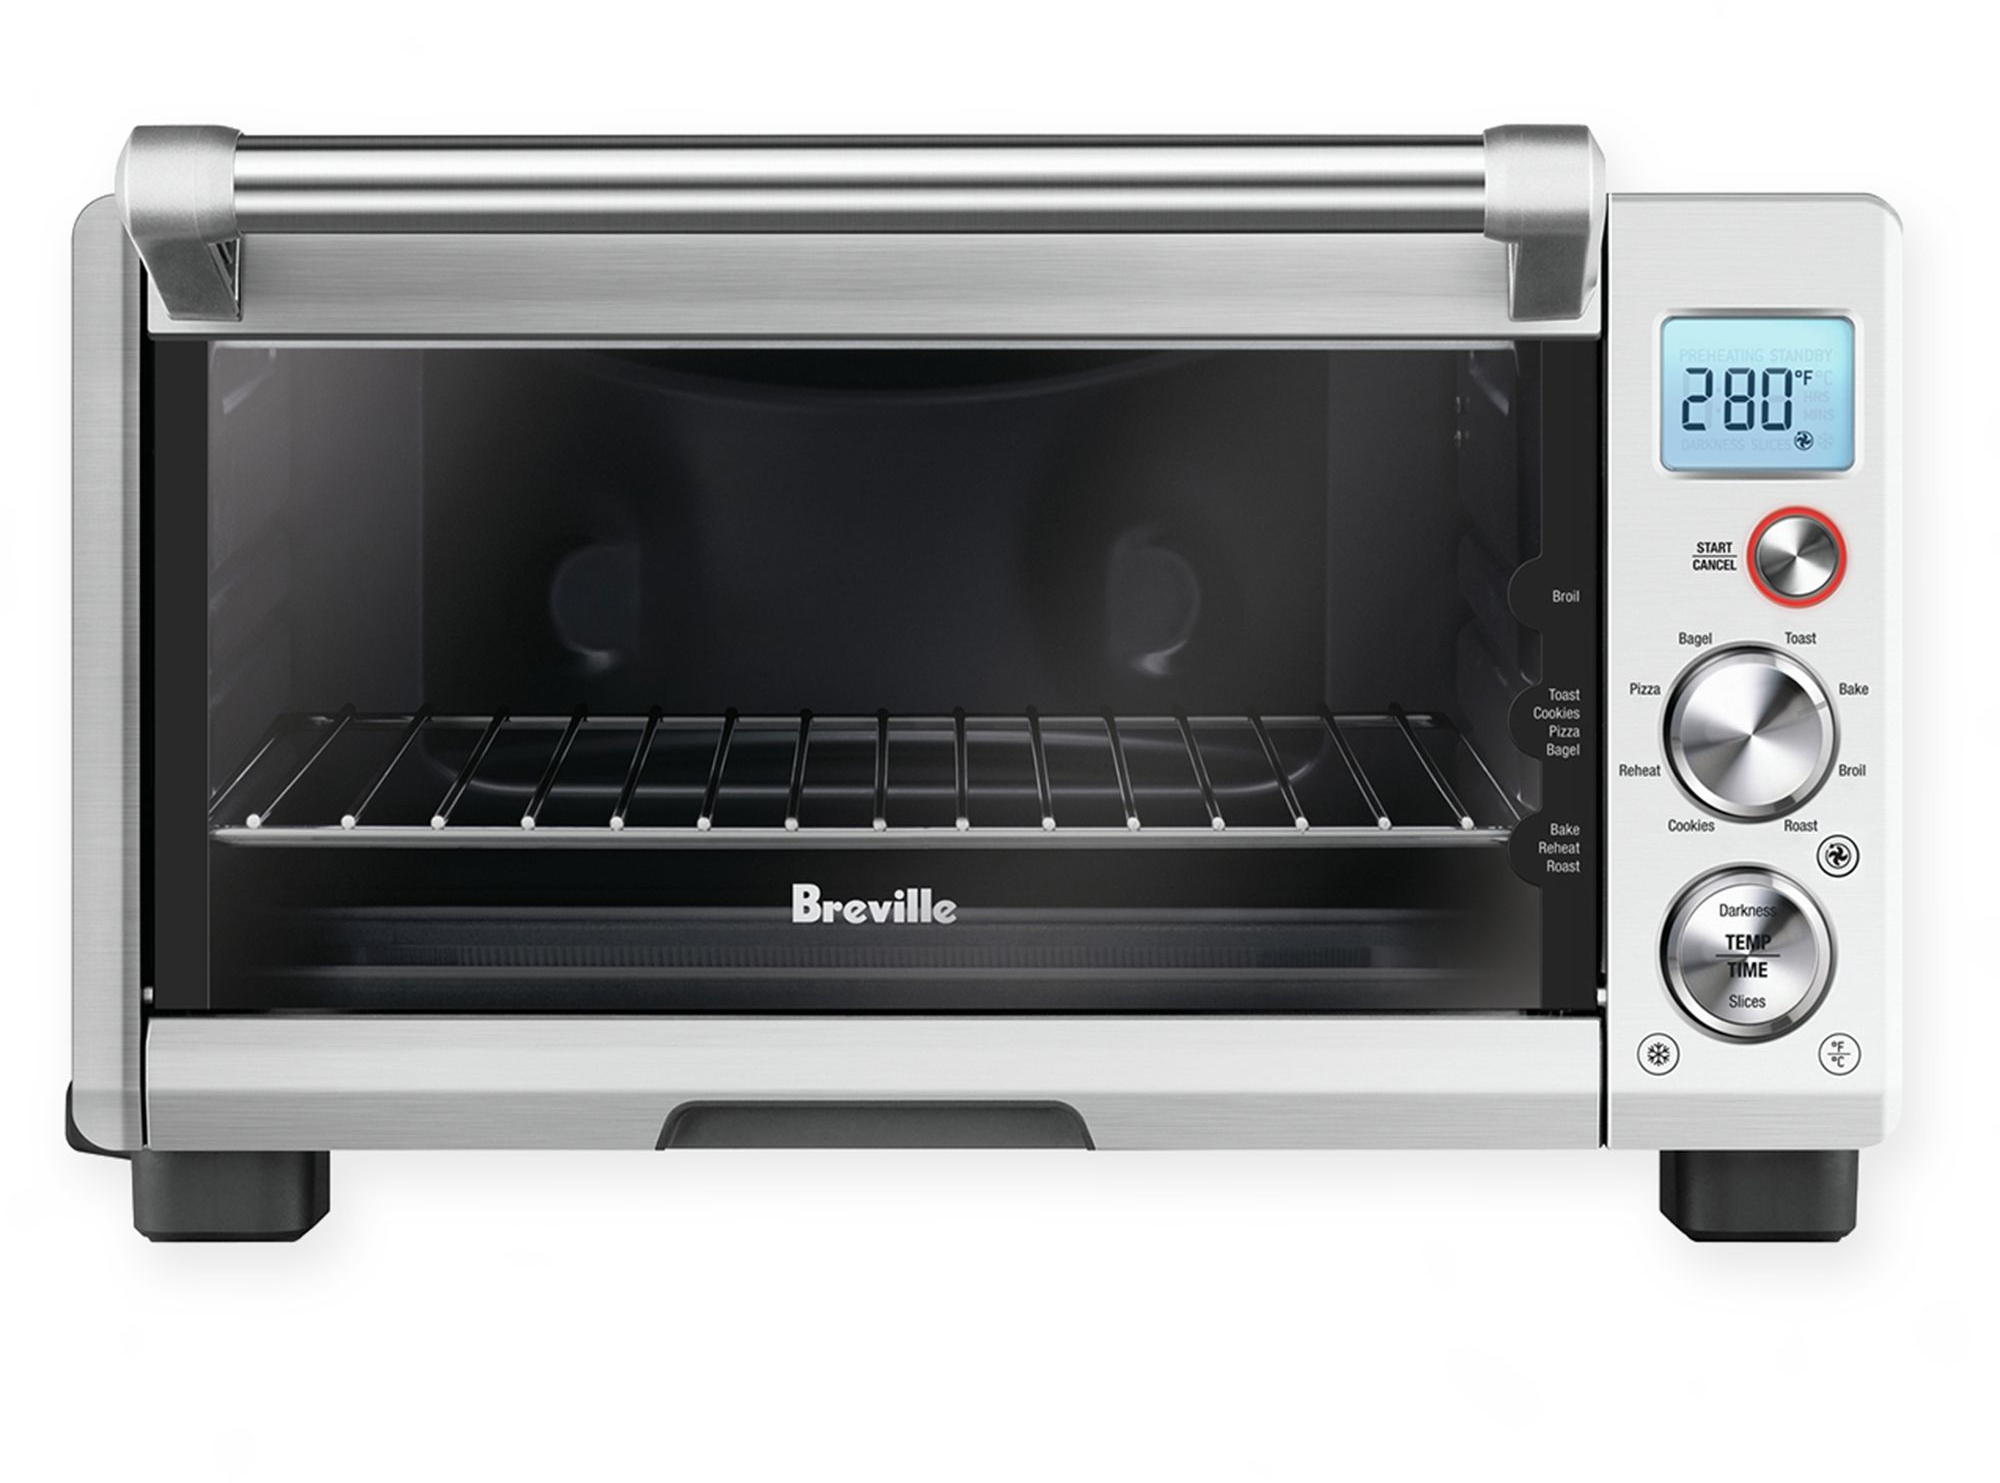 Breville Compact Convection Smart Toaster Oven 21614049391 ...